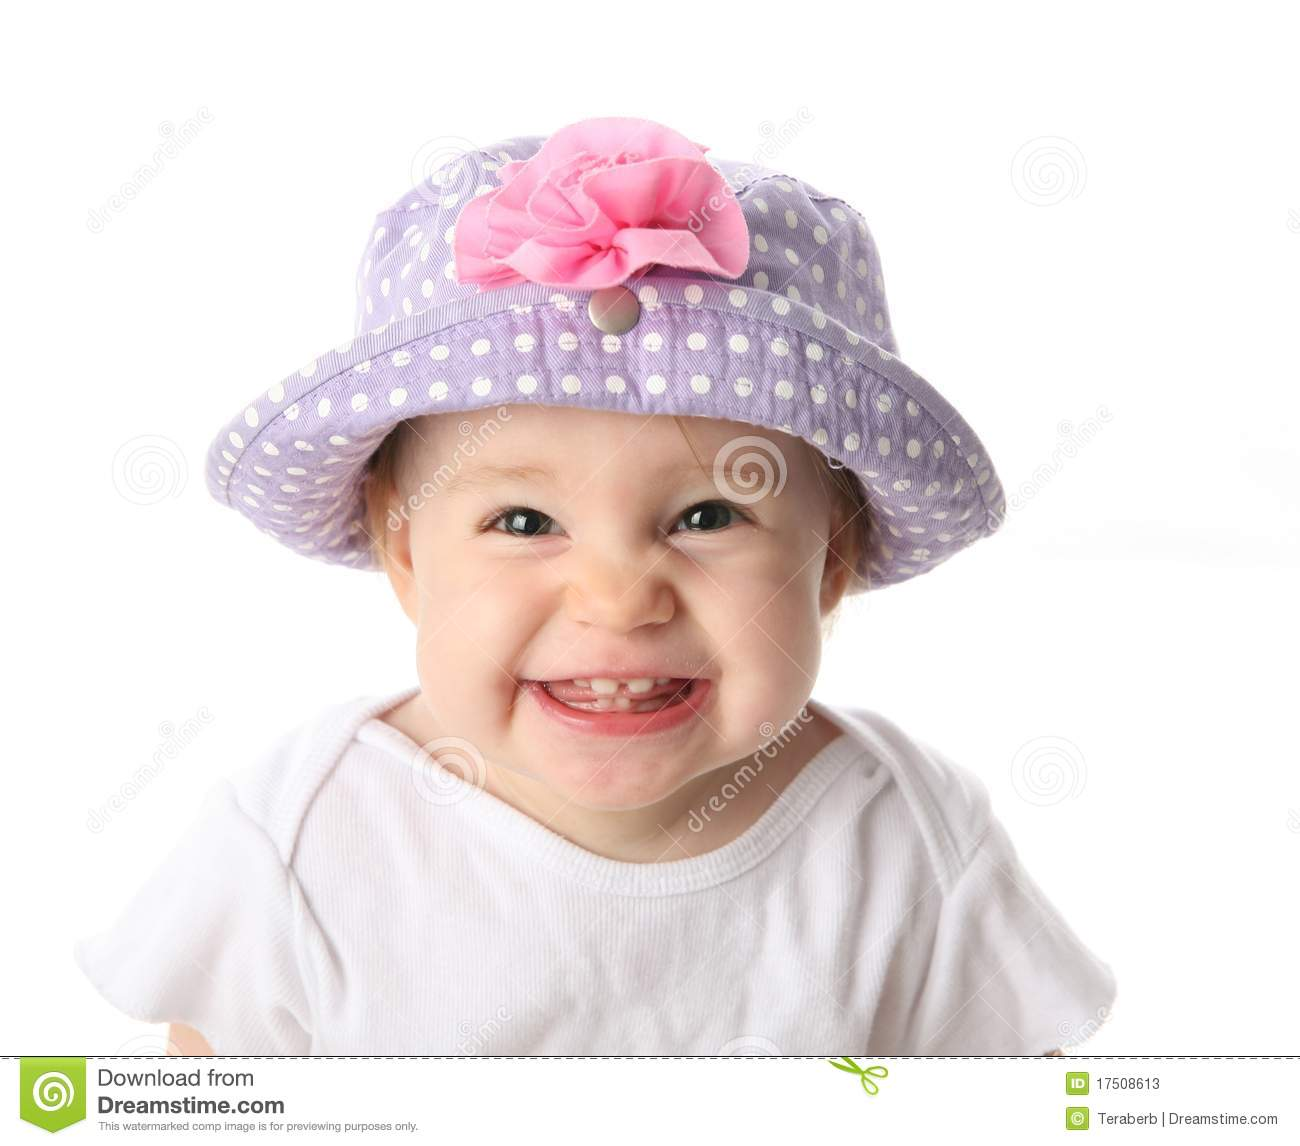 smiling baby with hat stock photos - image: 17508613